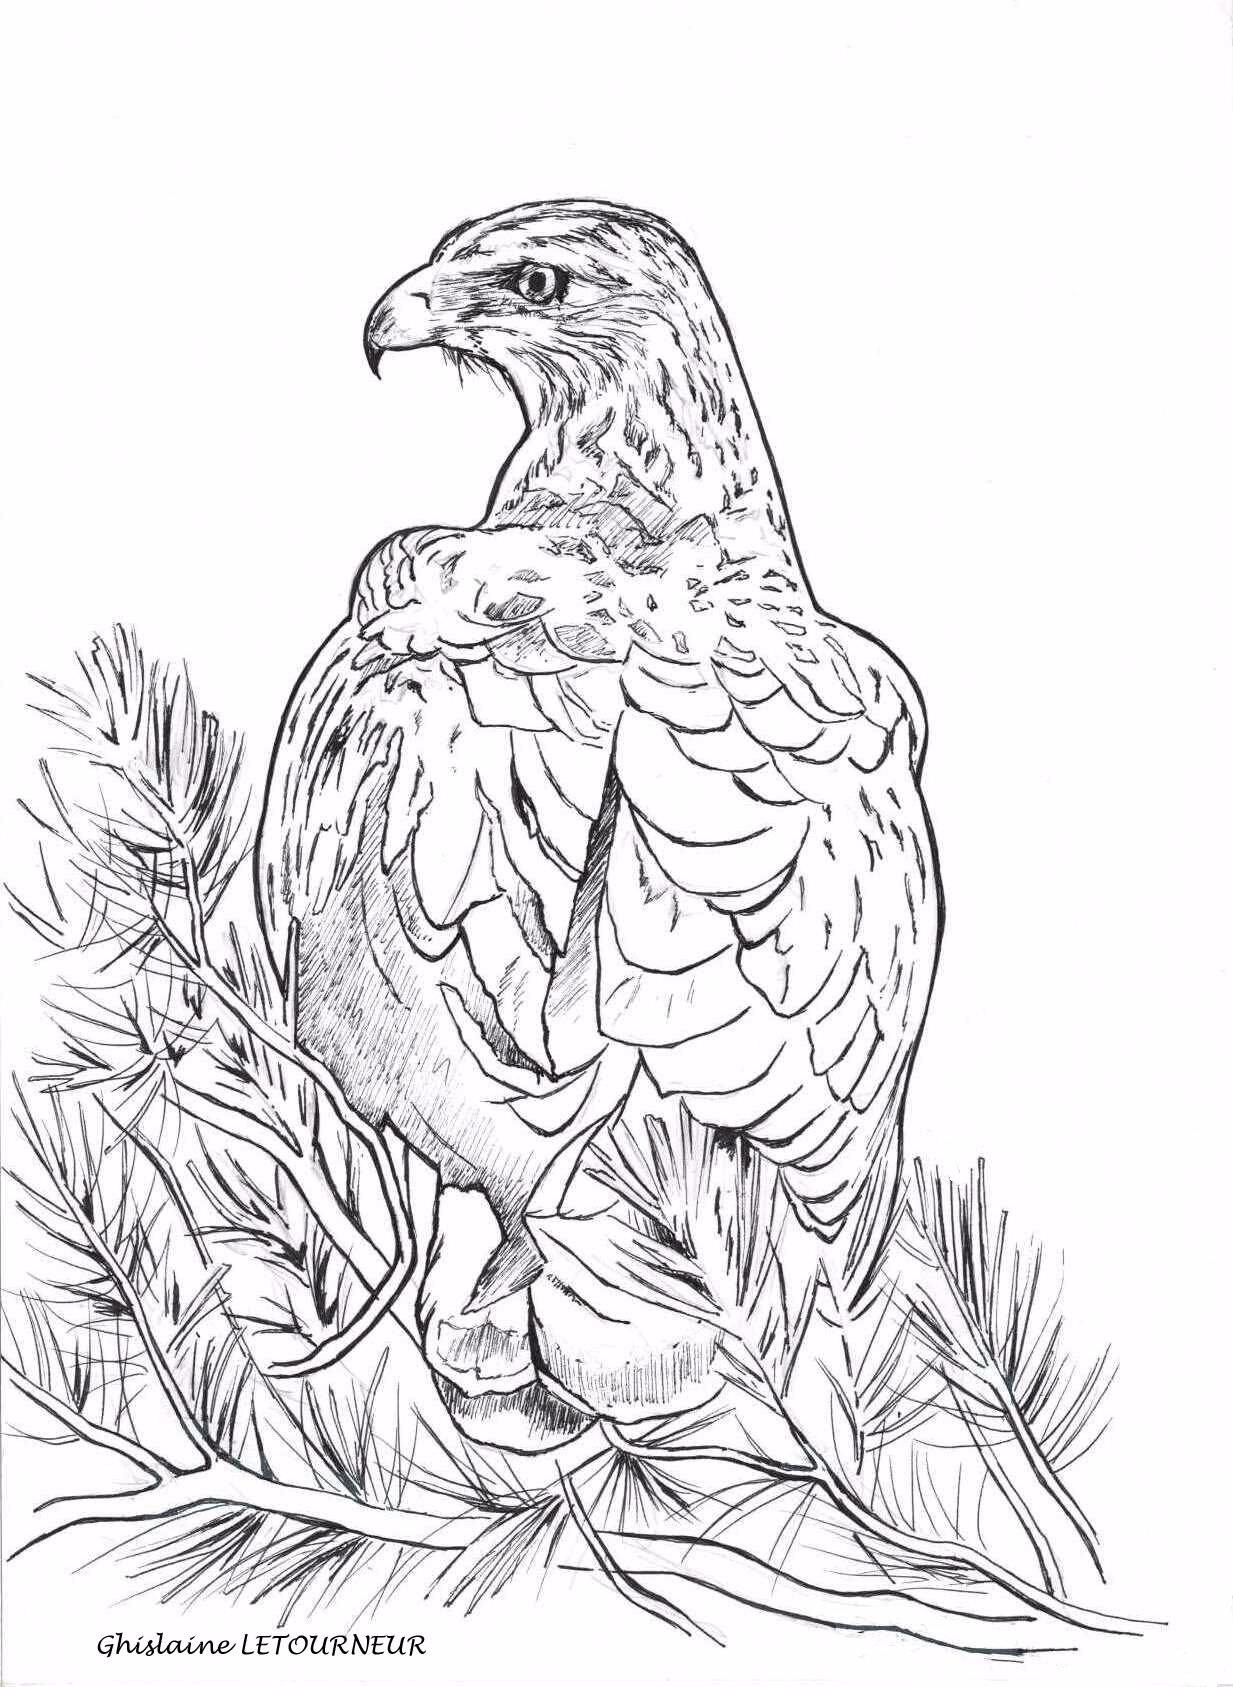 Coloriage aigle de bonelli dessin ghislaine letourneur photo de n coloriages animaux - Dessin d aigle royal ...